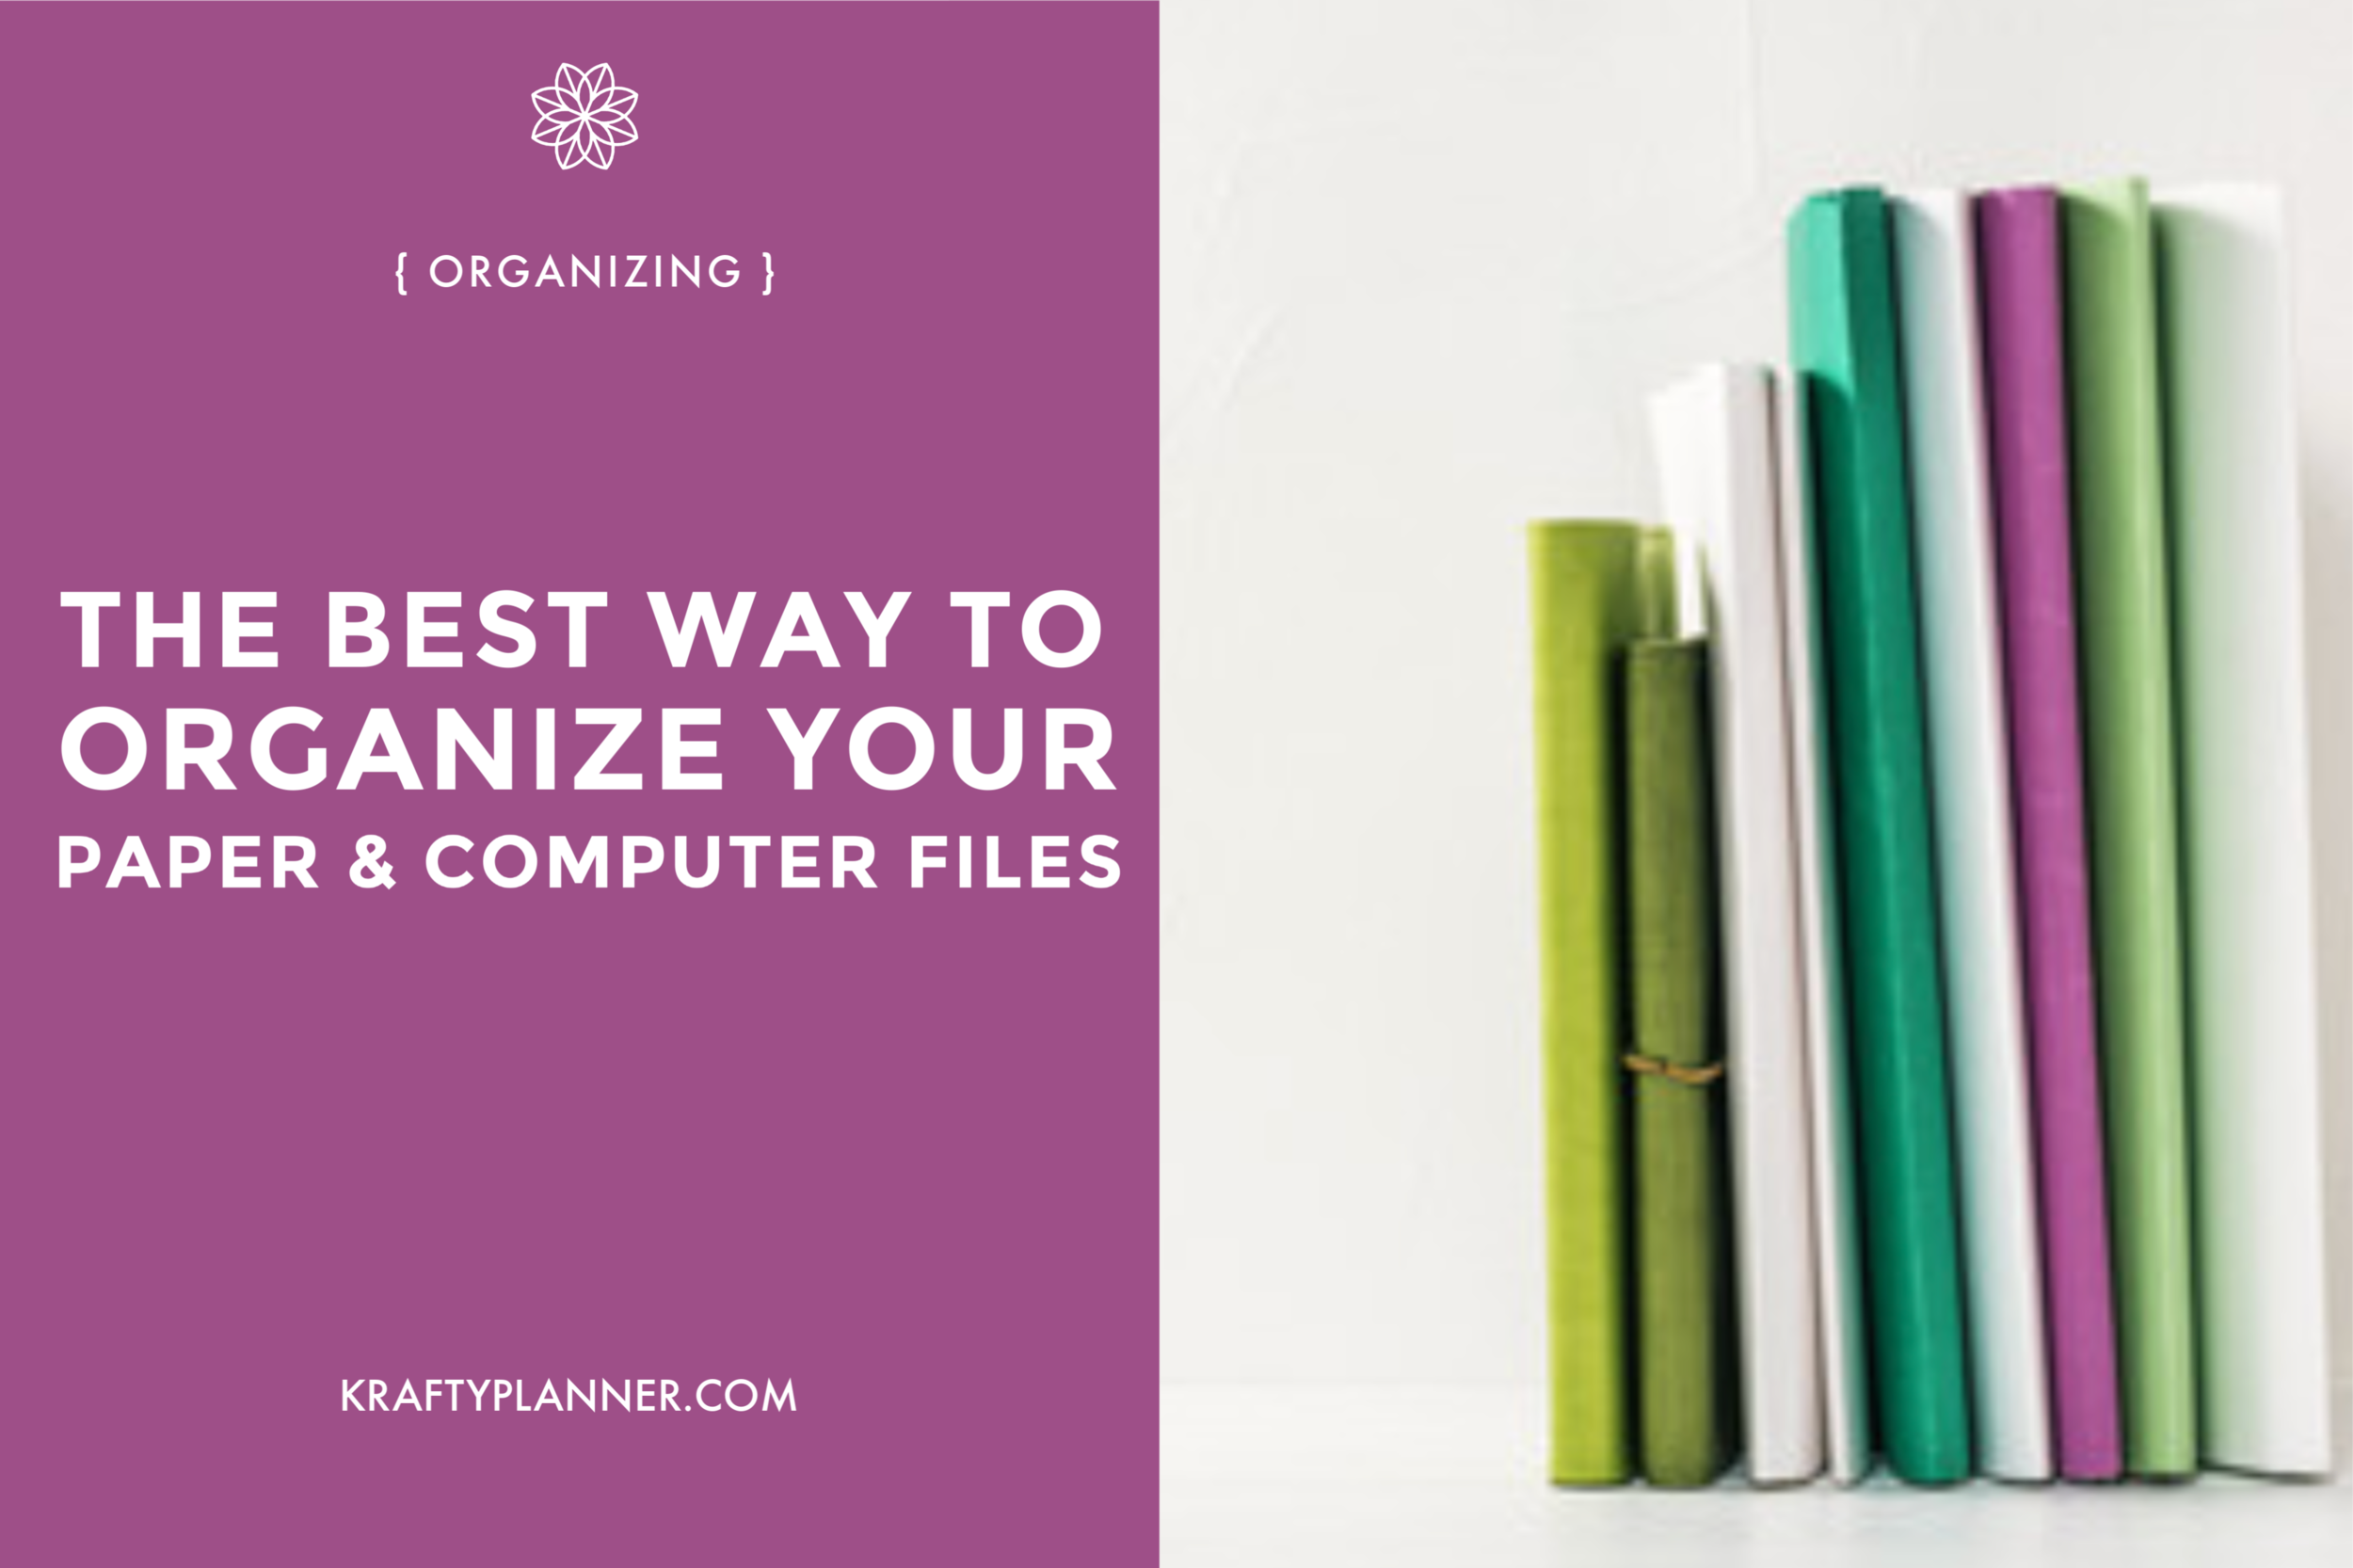 The Best Way to Organize Your Paper and Computer Files